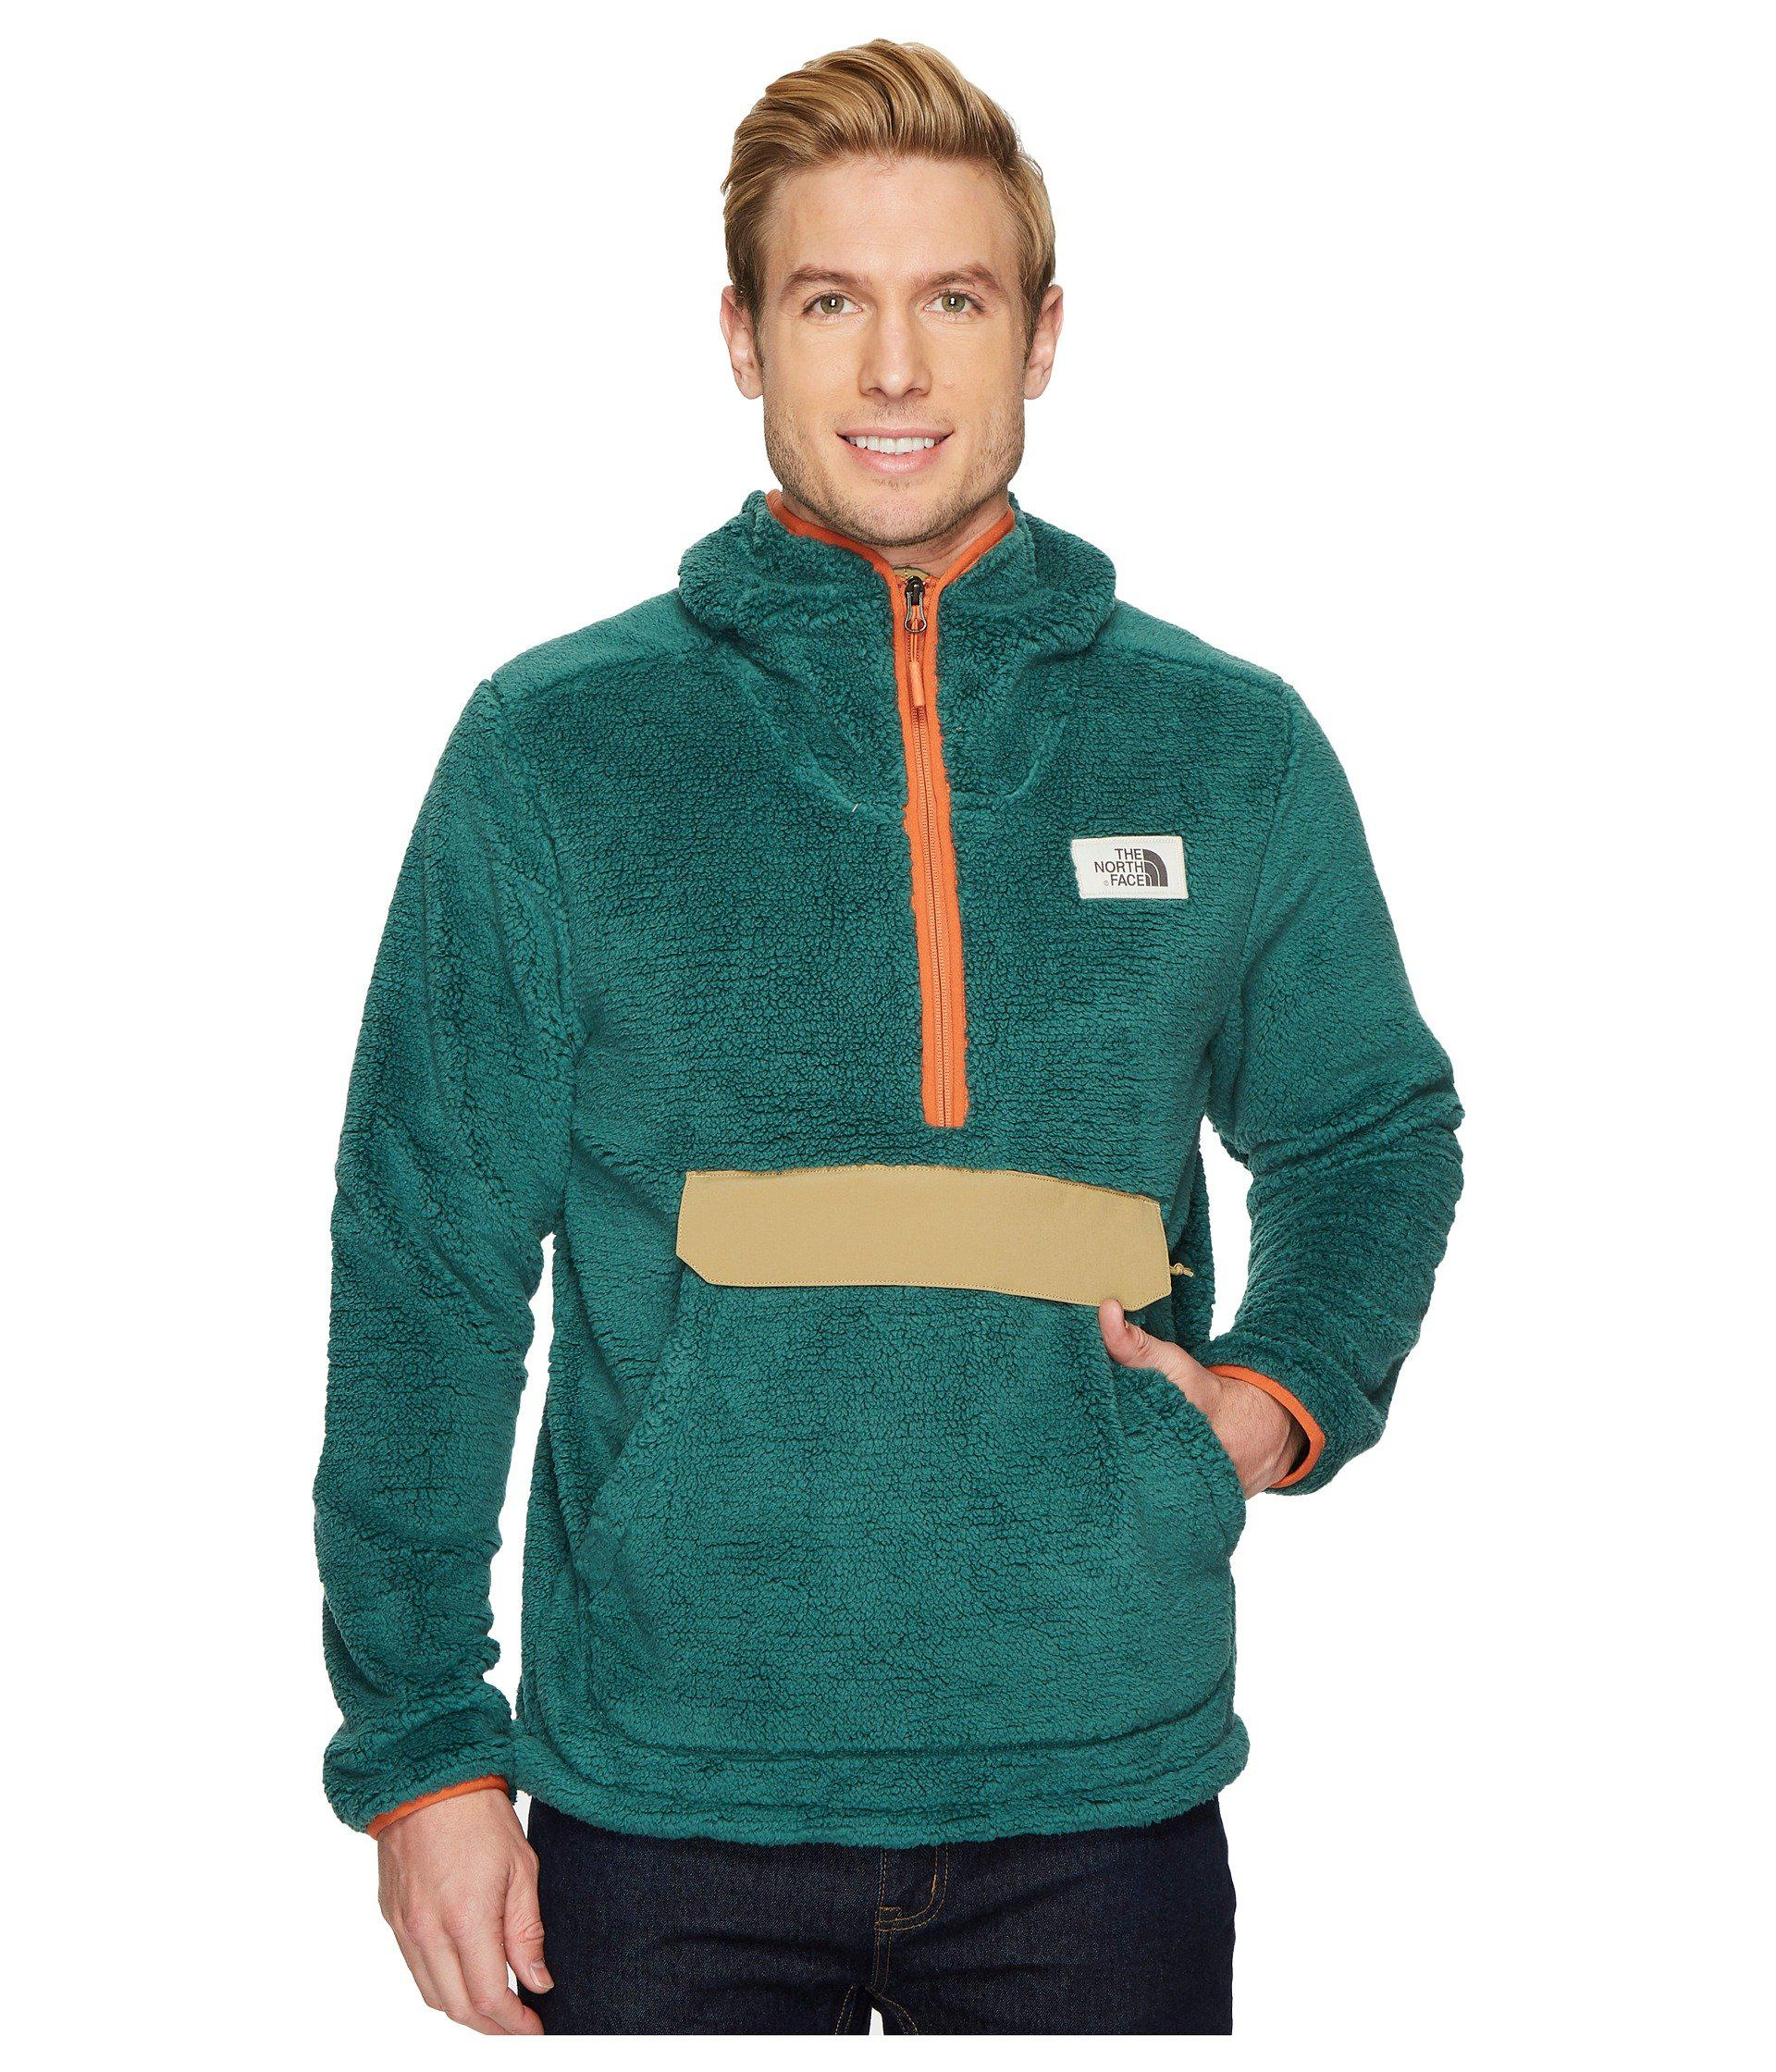 Lyst - The North Face Campshire Pullover Hoodie in Green for Men ... 41d729e87